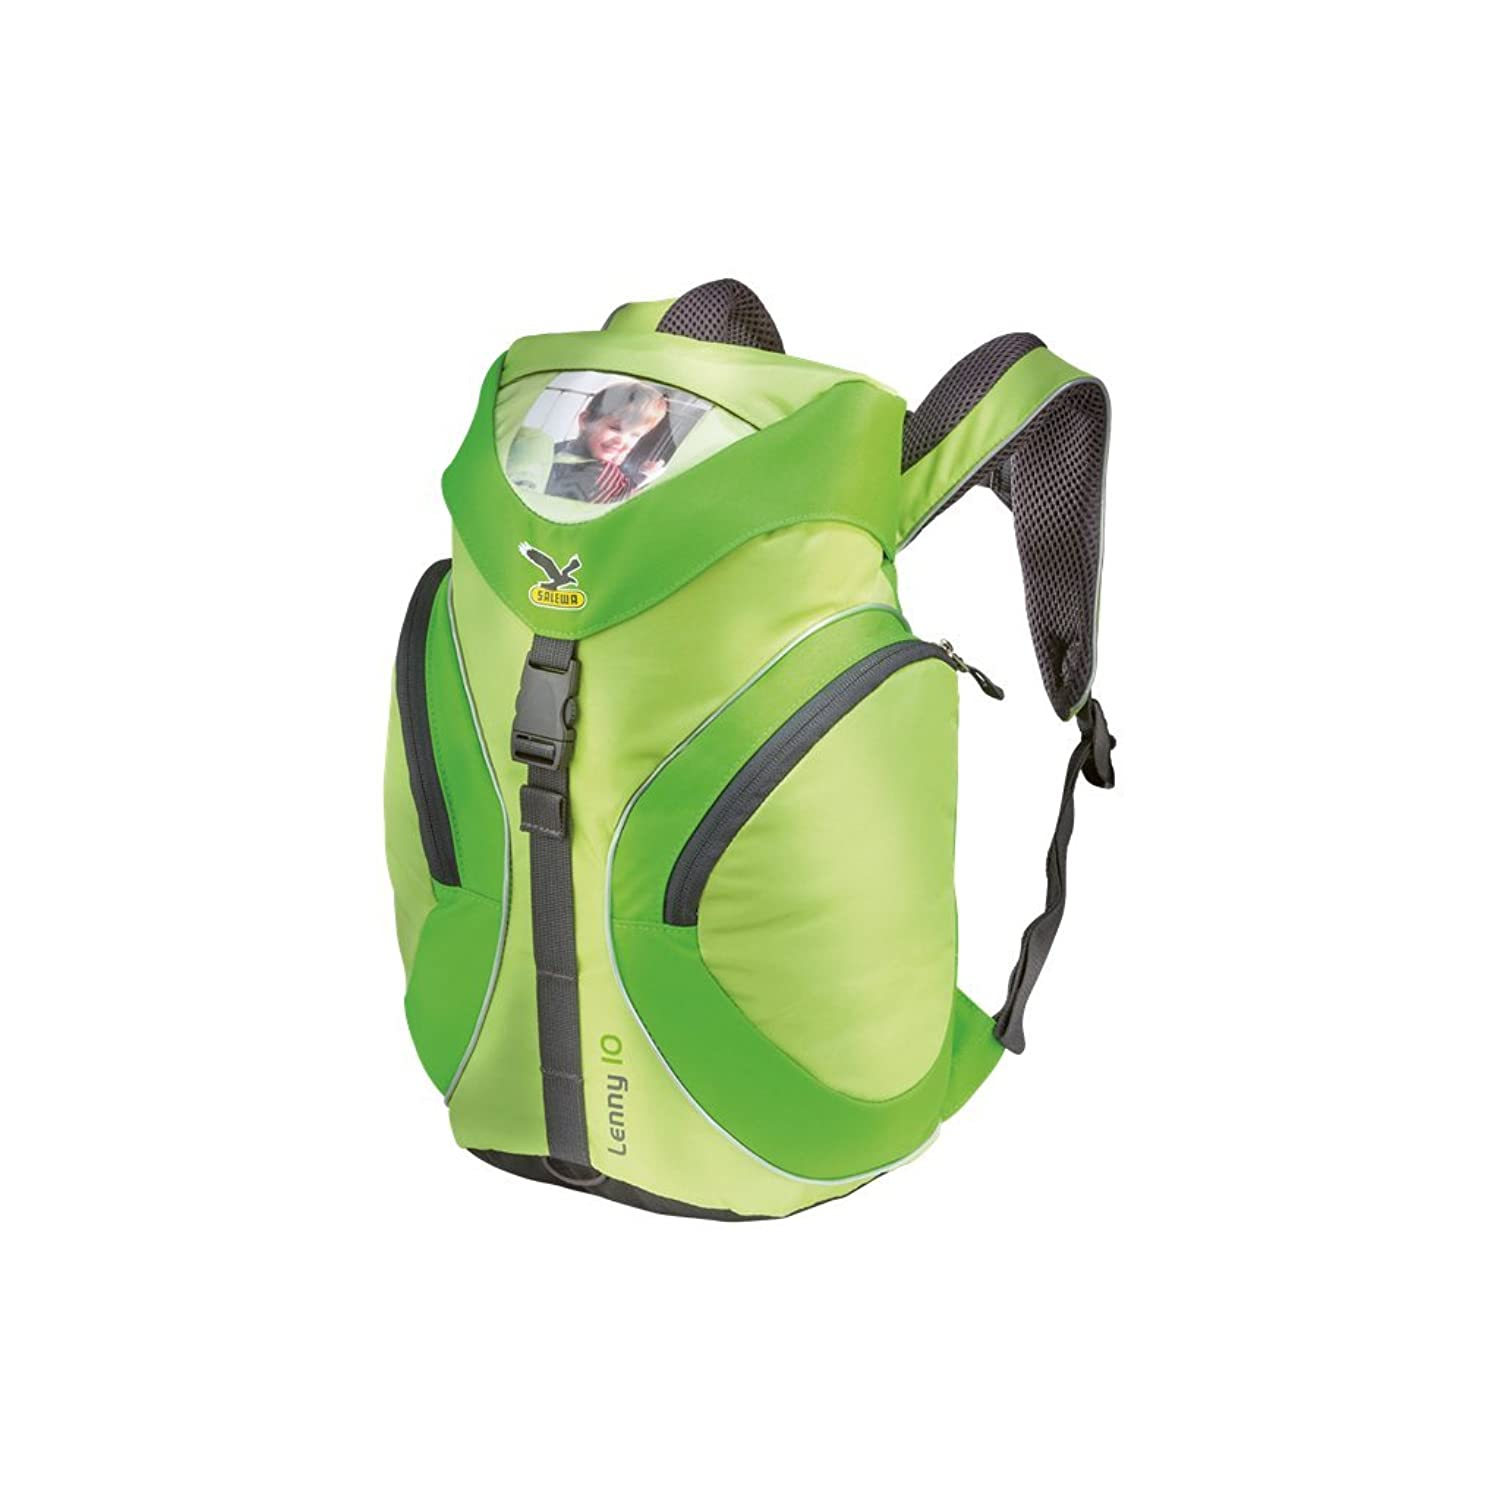 Salewa Lenny 10 Bp Children's Rucksack цена 2017